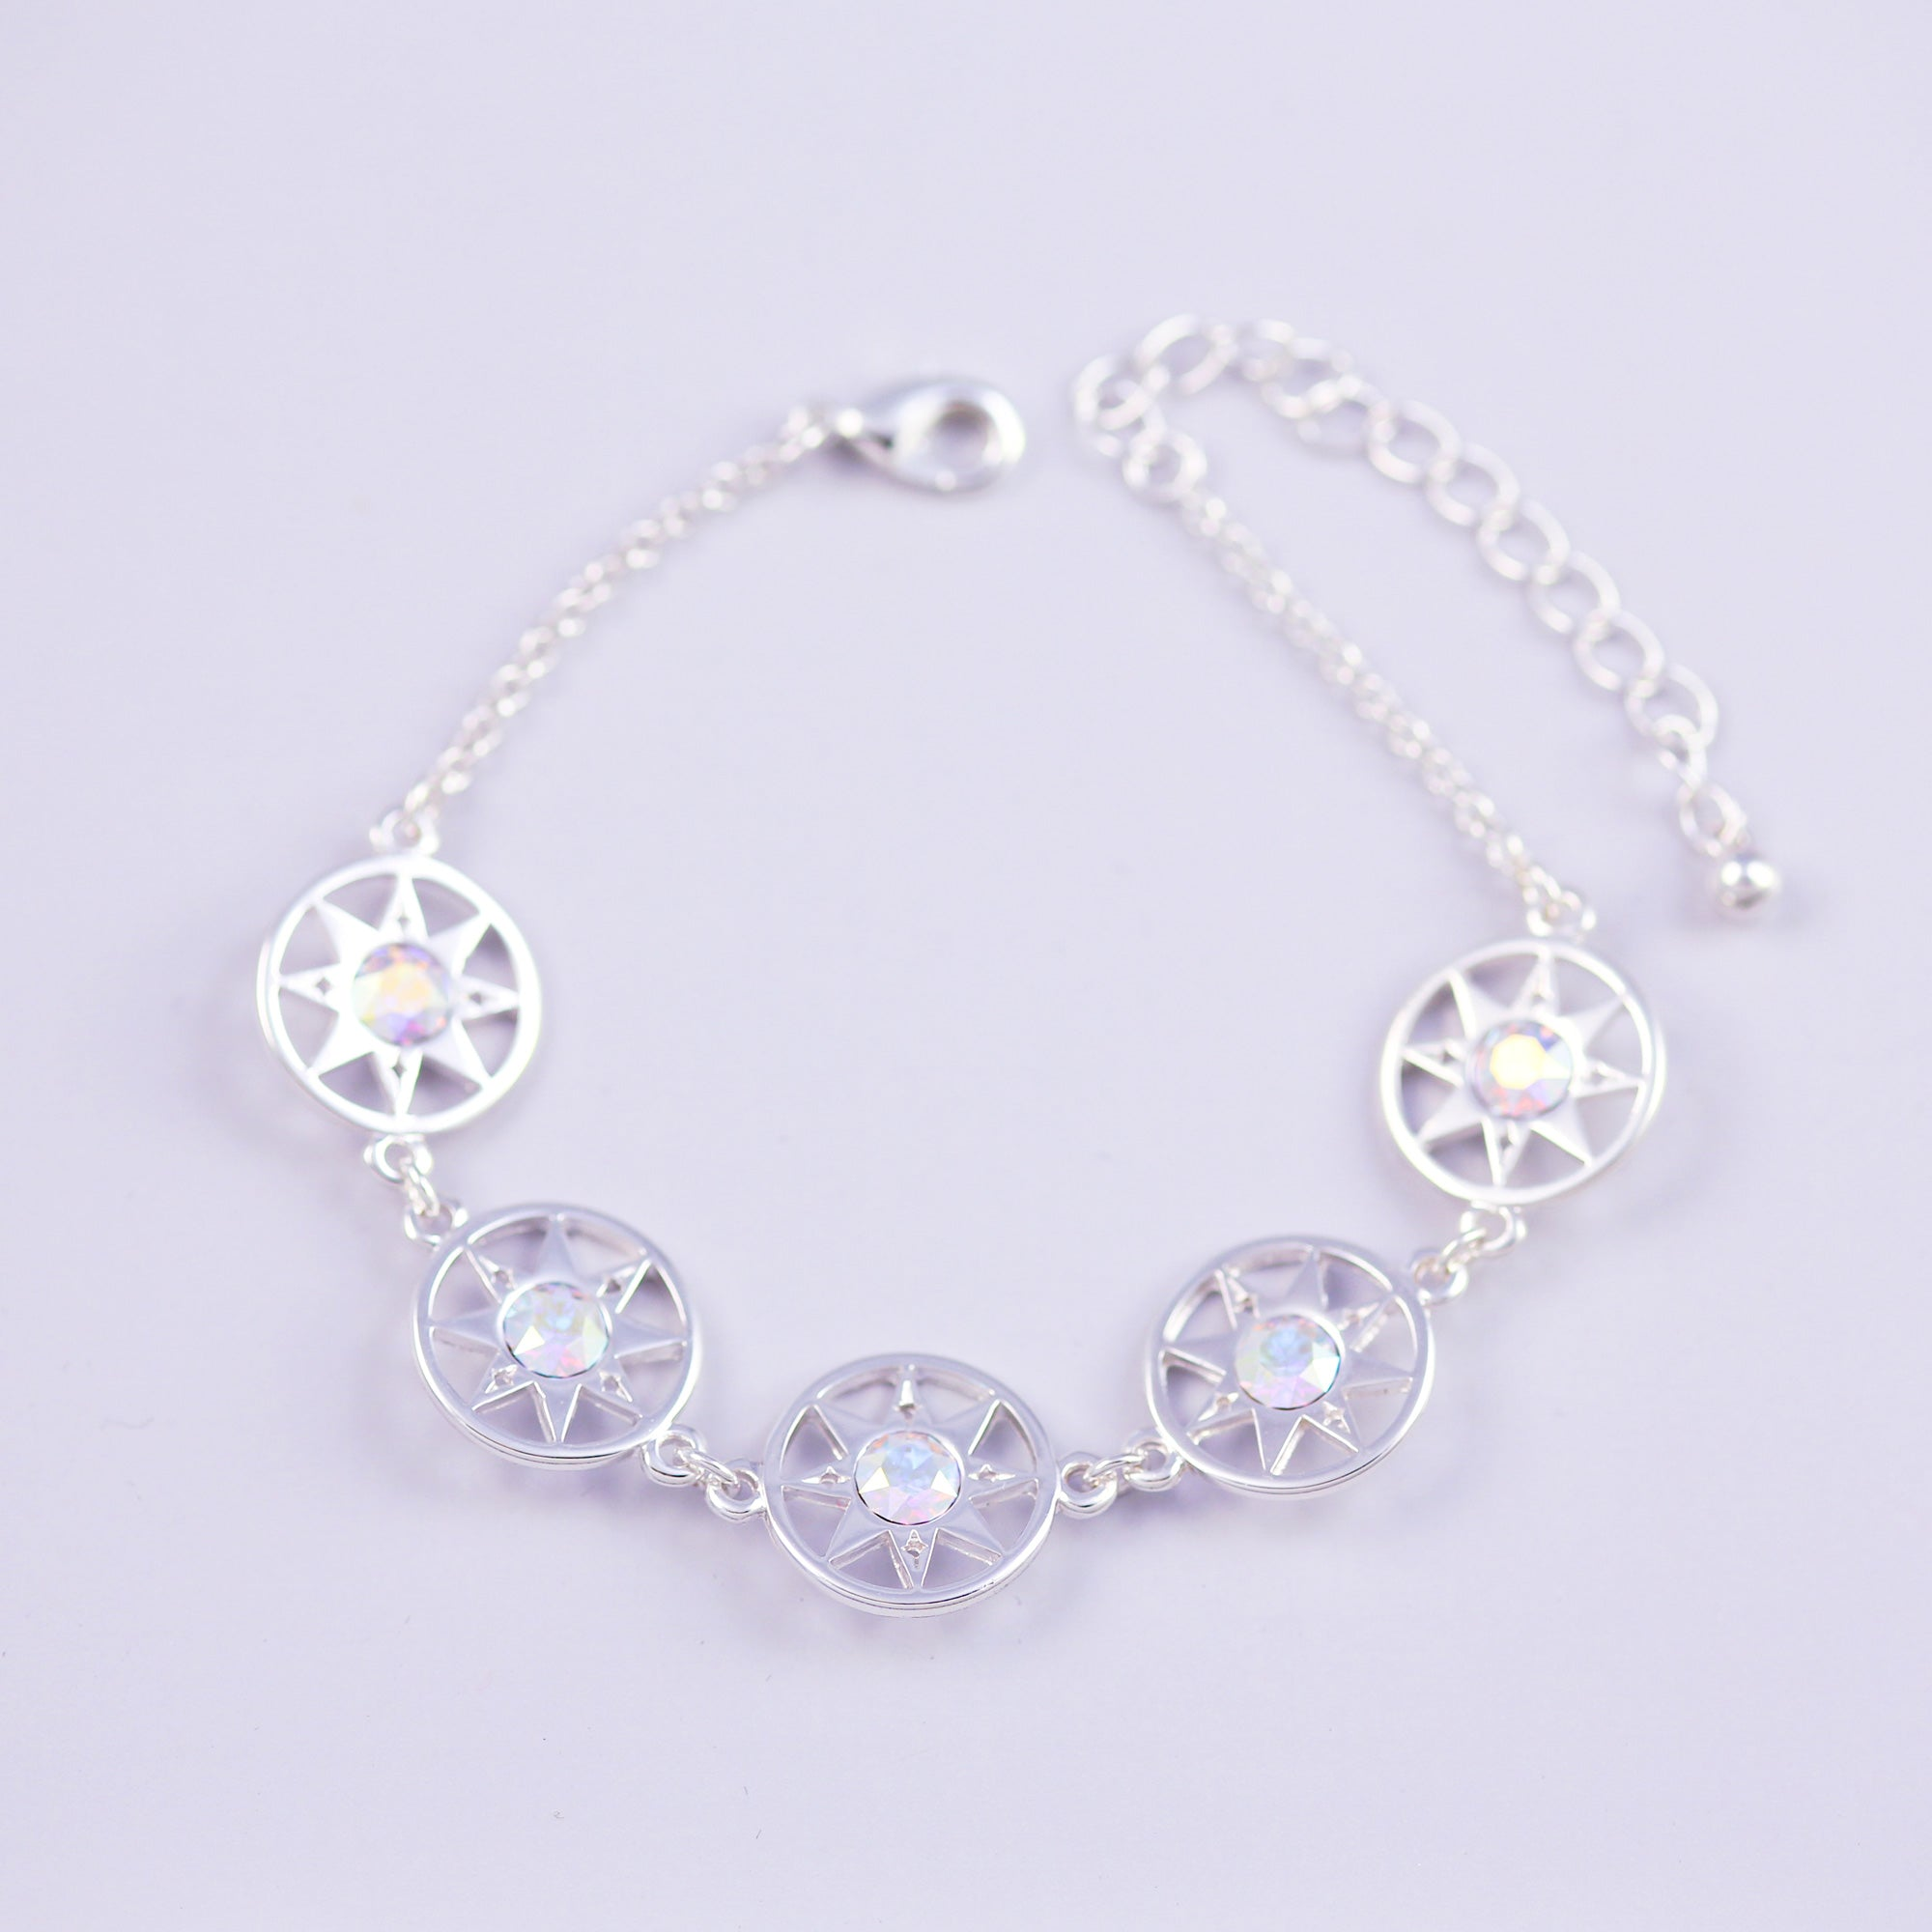 Silver & Crystal AB Compass North Star Multi Link Bracelet